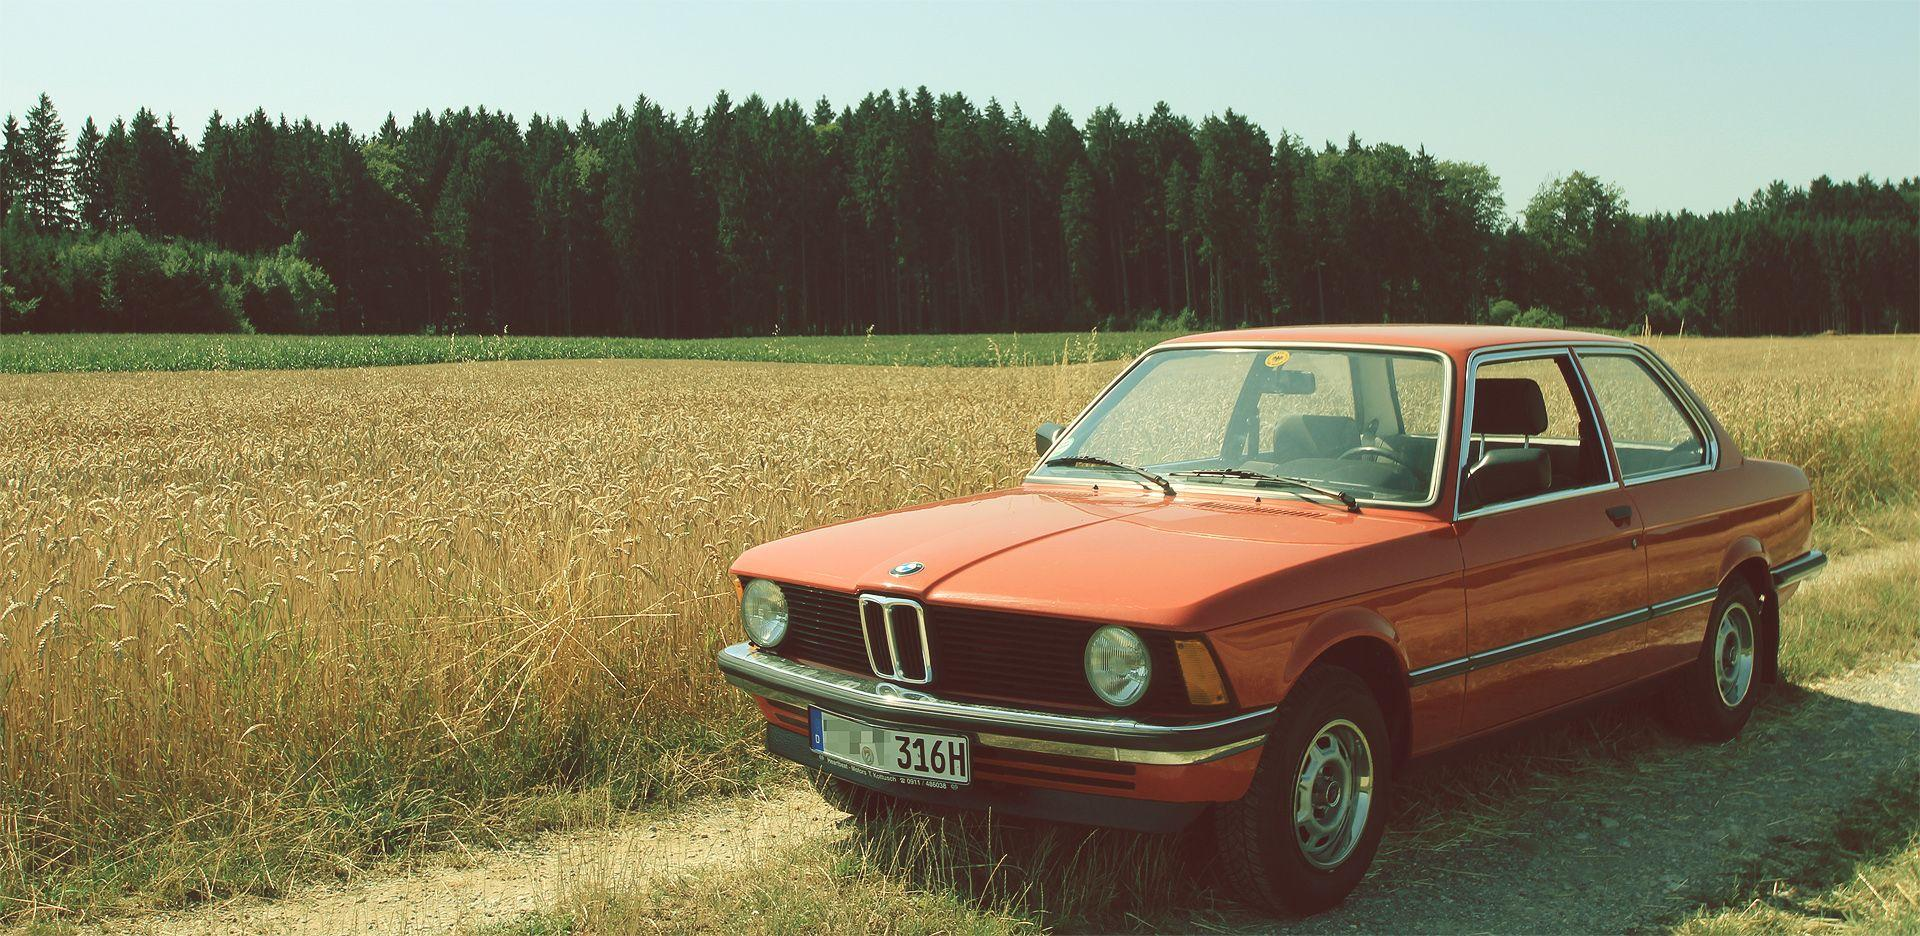 Here is a nice wallpapers of a BMW E21 316 xd